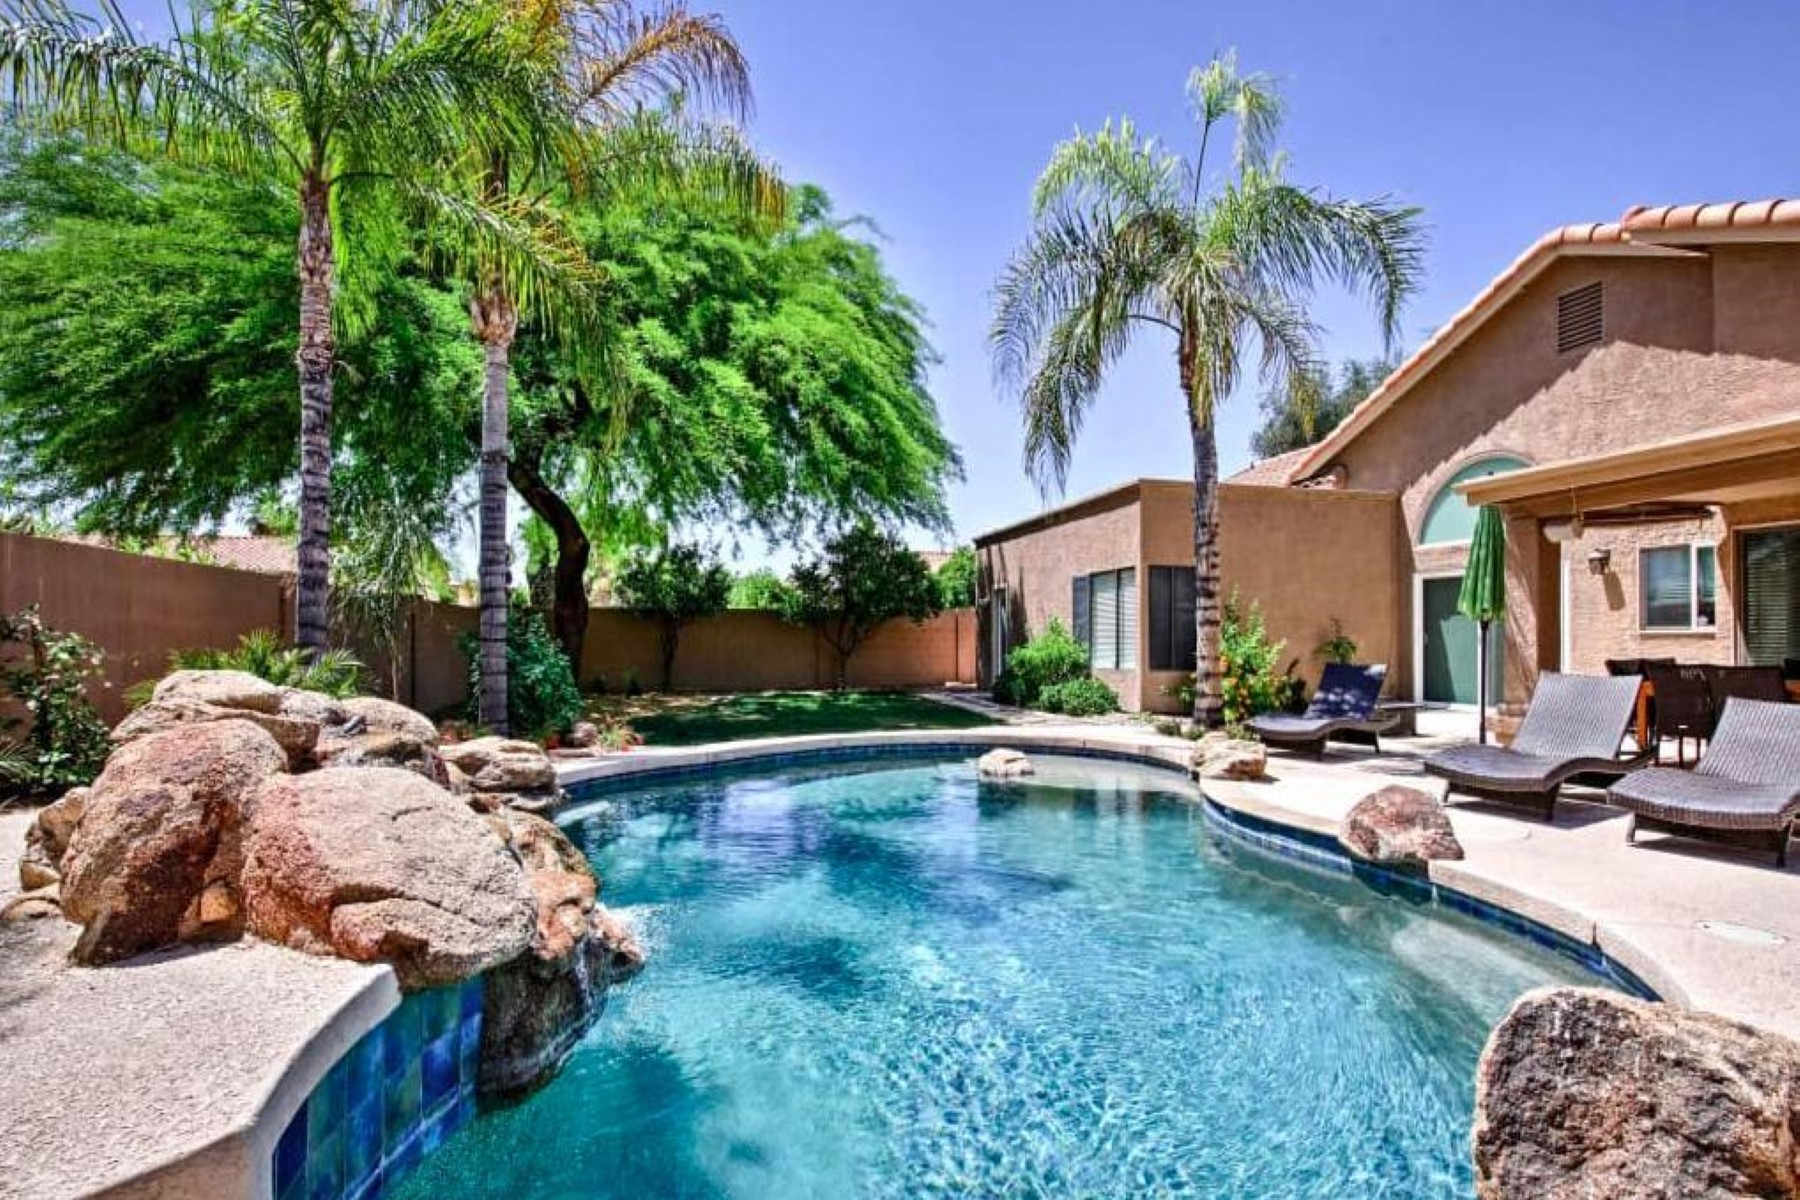 Single Family Homes for Sale at Warner Ranch Crossing 155 W LA VIEVE LN Tempe, Arizona 85284 United States